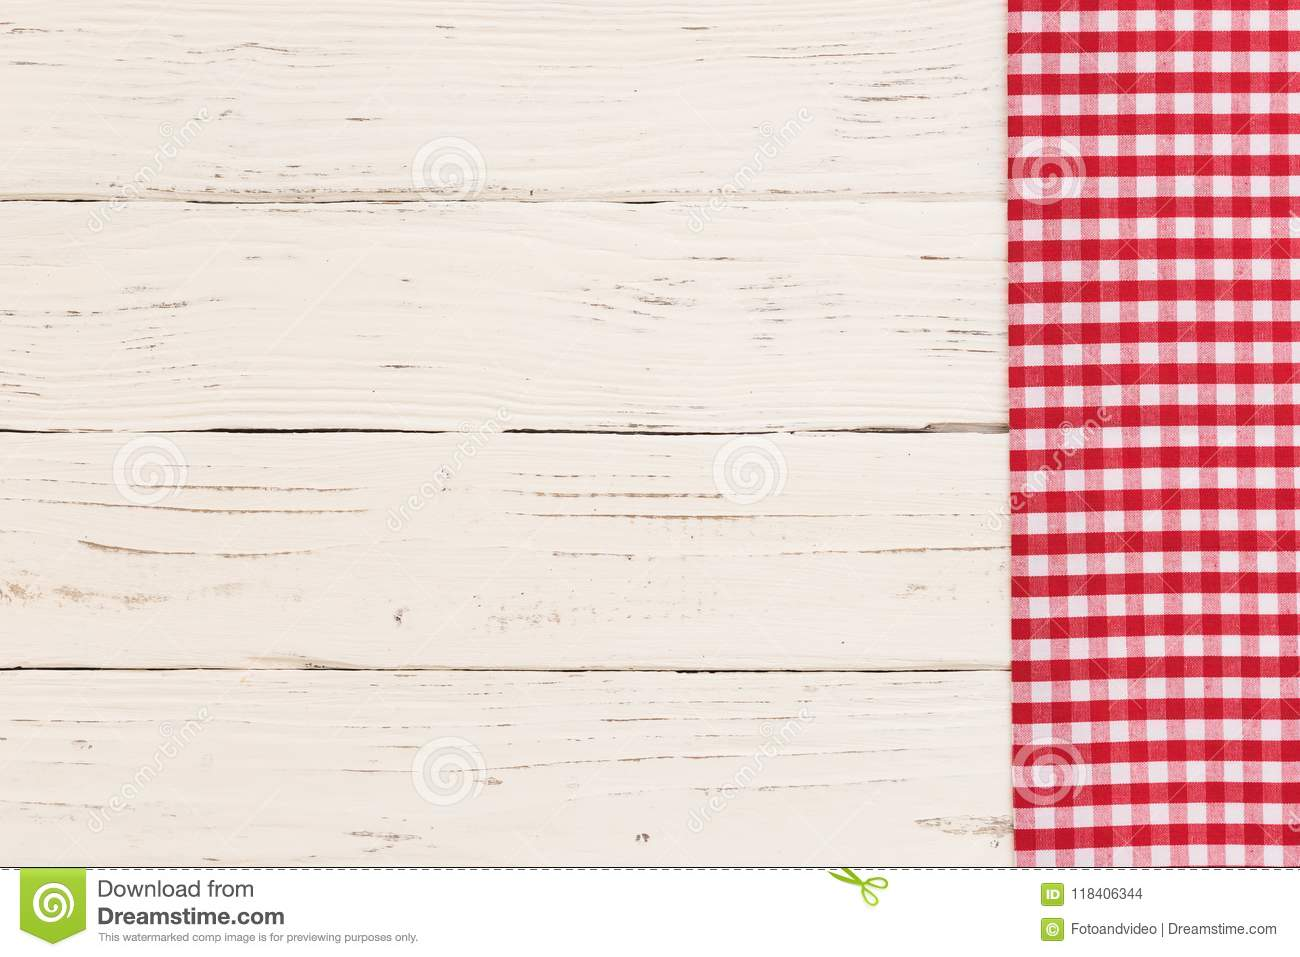 Red Rustic Checked Tablecloth Border On White Wooden Kitchen